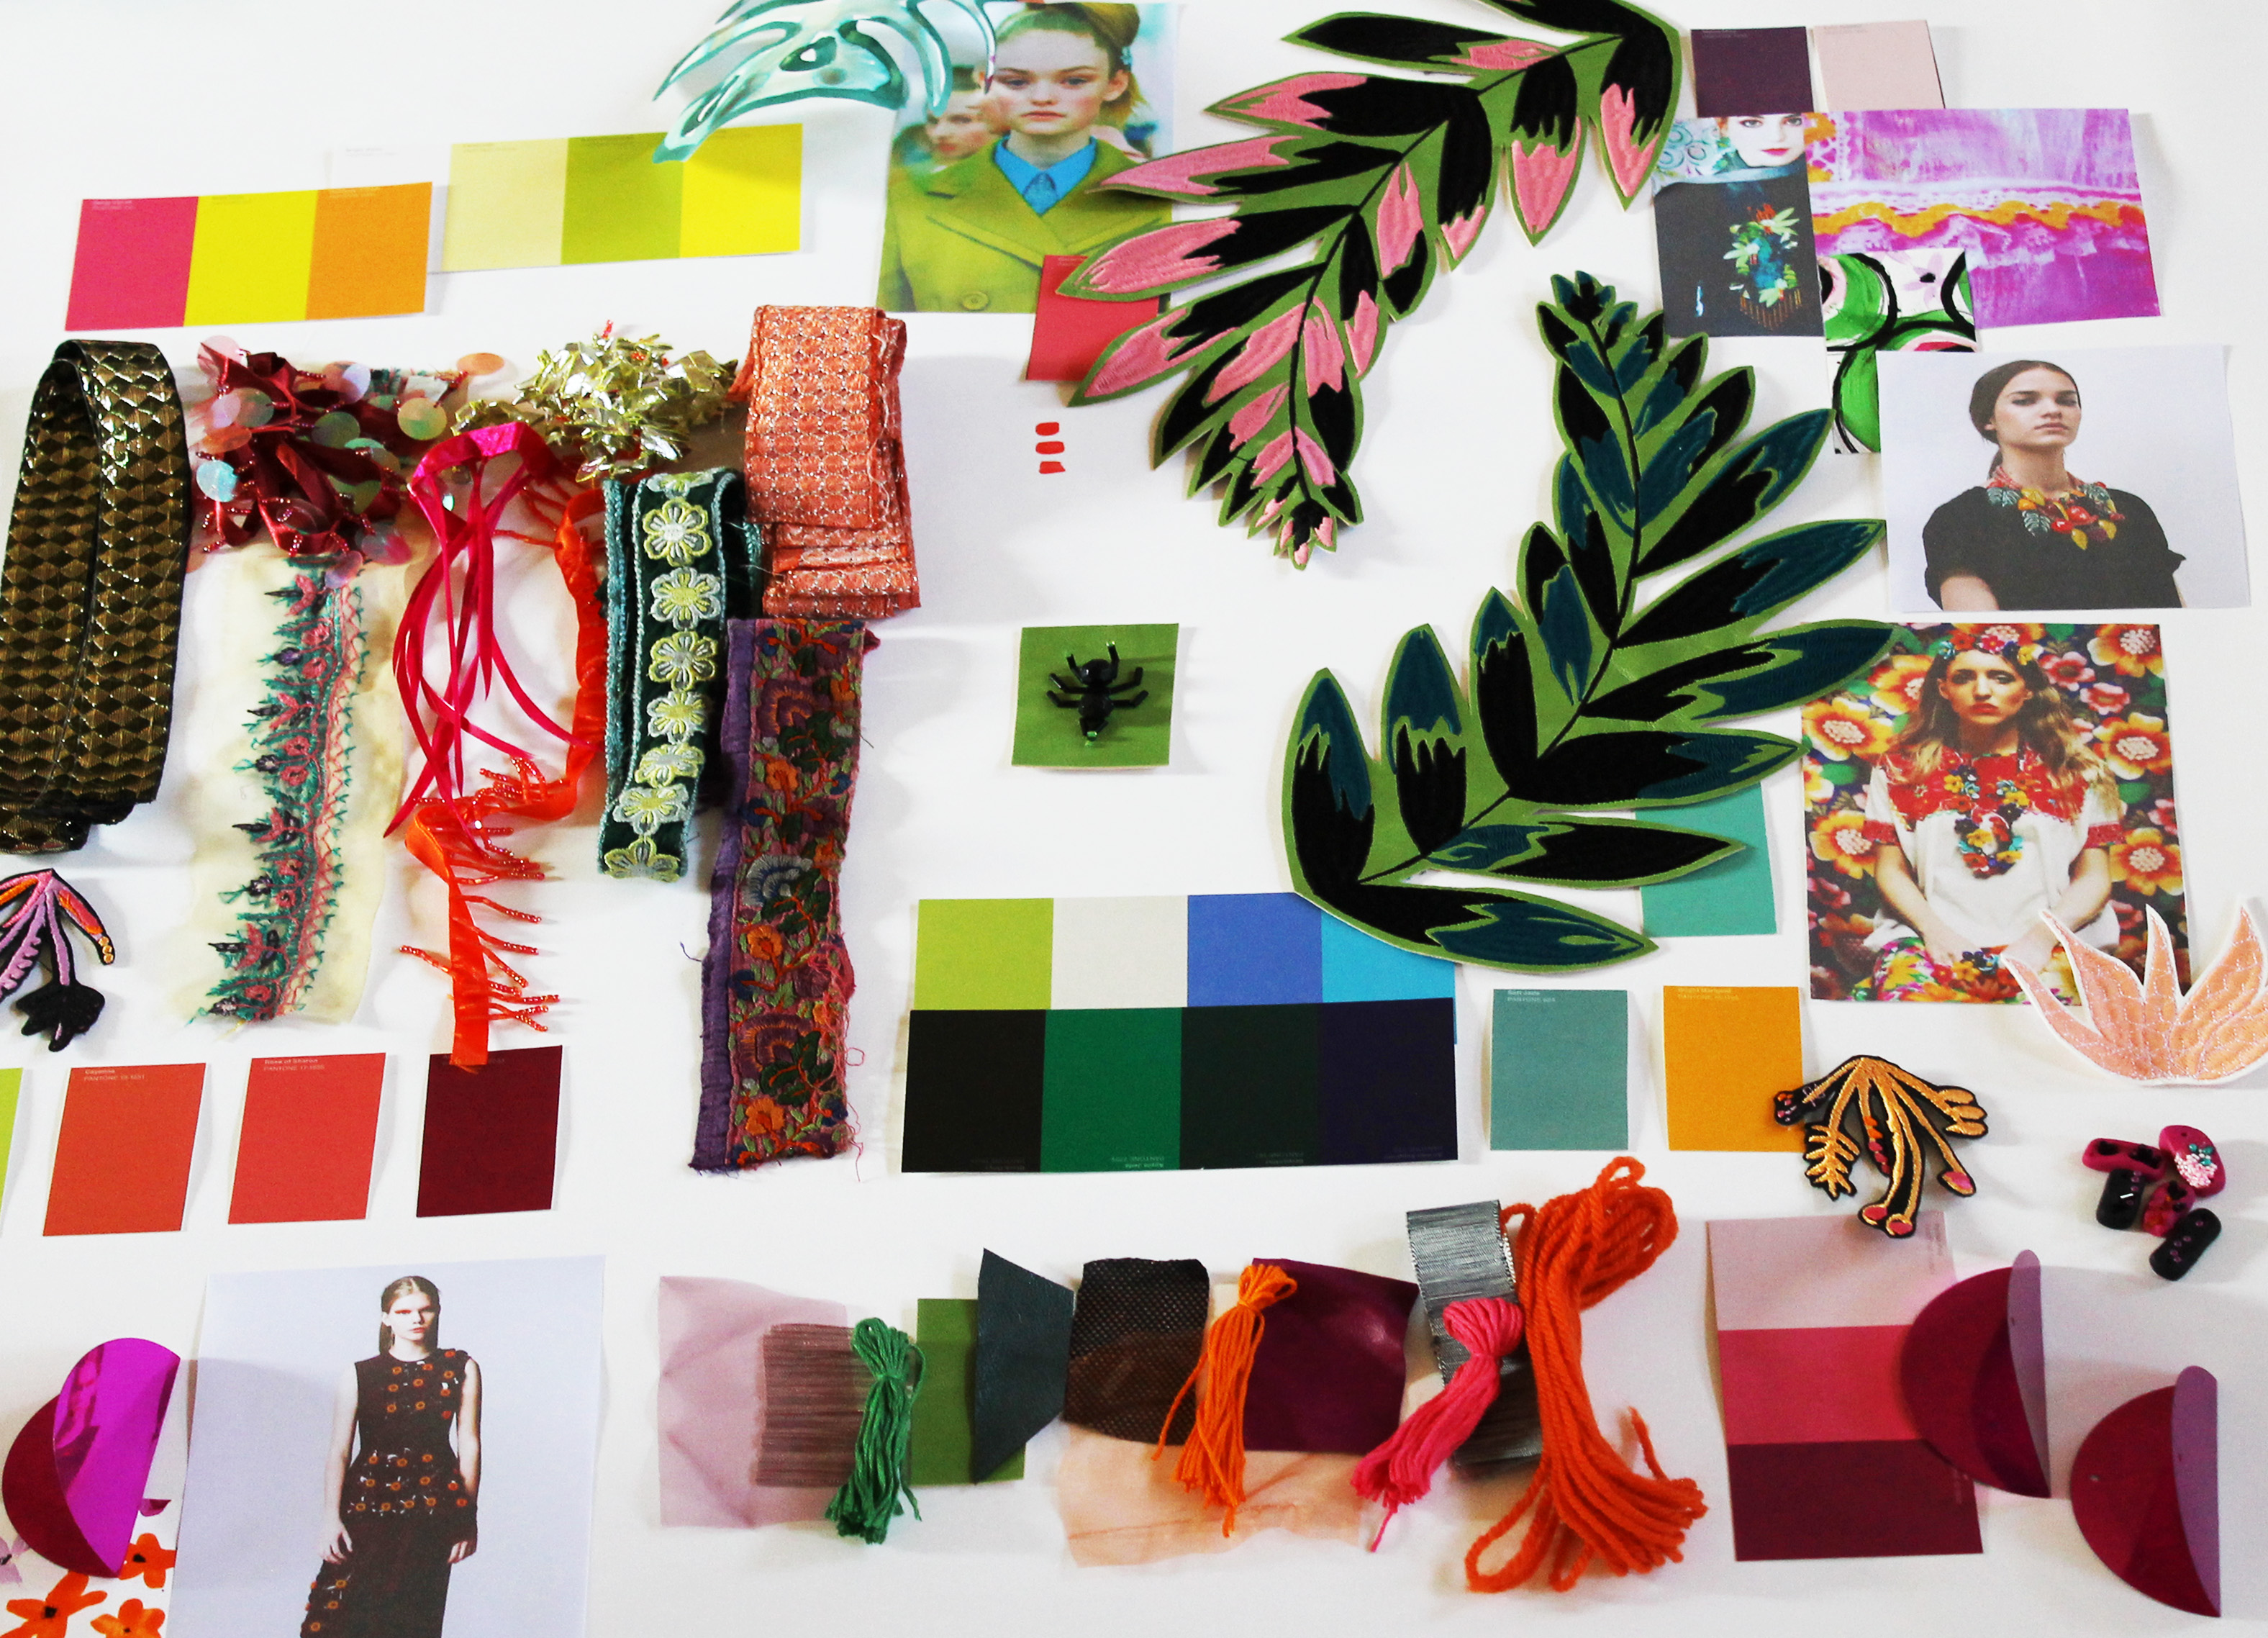 Eclectic Trends From The Mood Board To The Finished Product With Liss Cooke Eclectic Trends